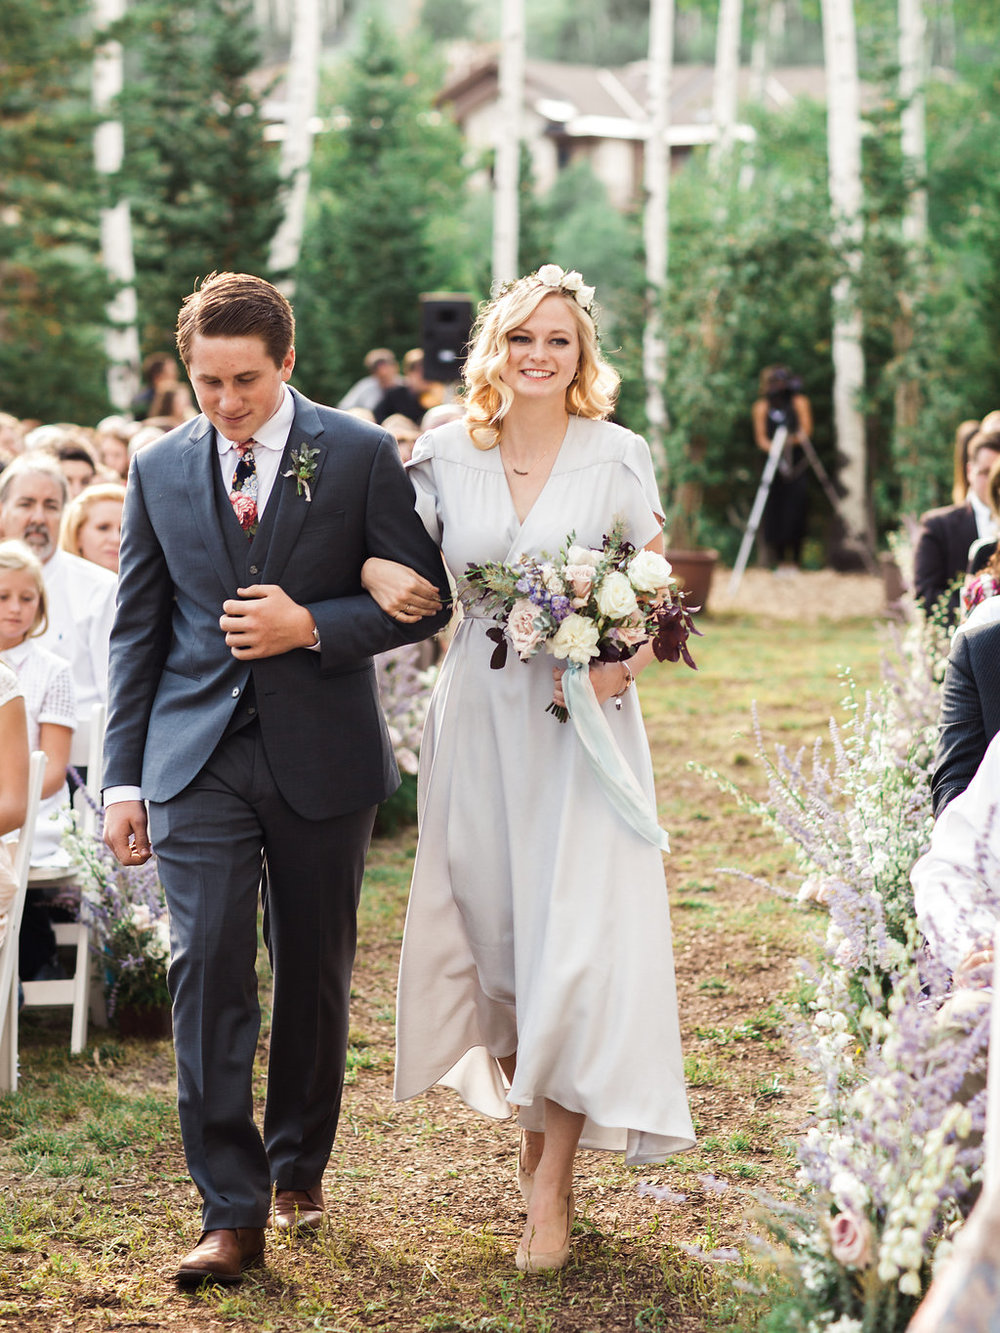 White Pine Canyon Wedding in Park City Utah | Megan Robinson Photography | Michelle Leo Events | Utah Wedding Design and Planning